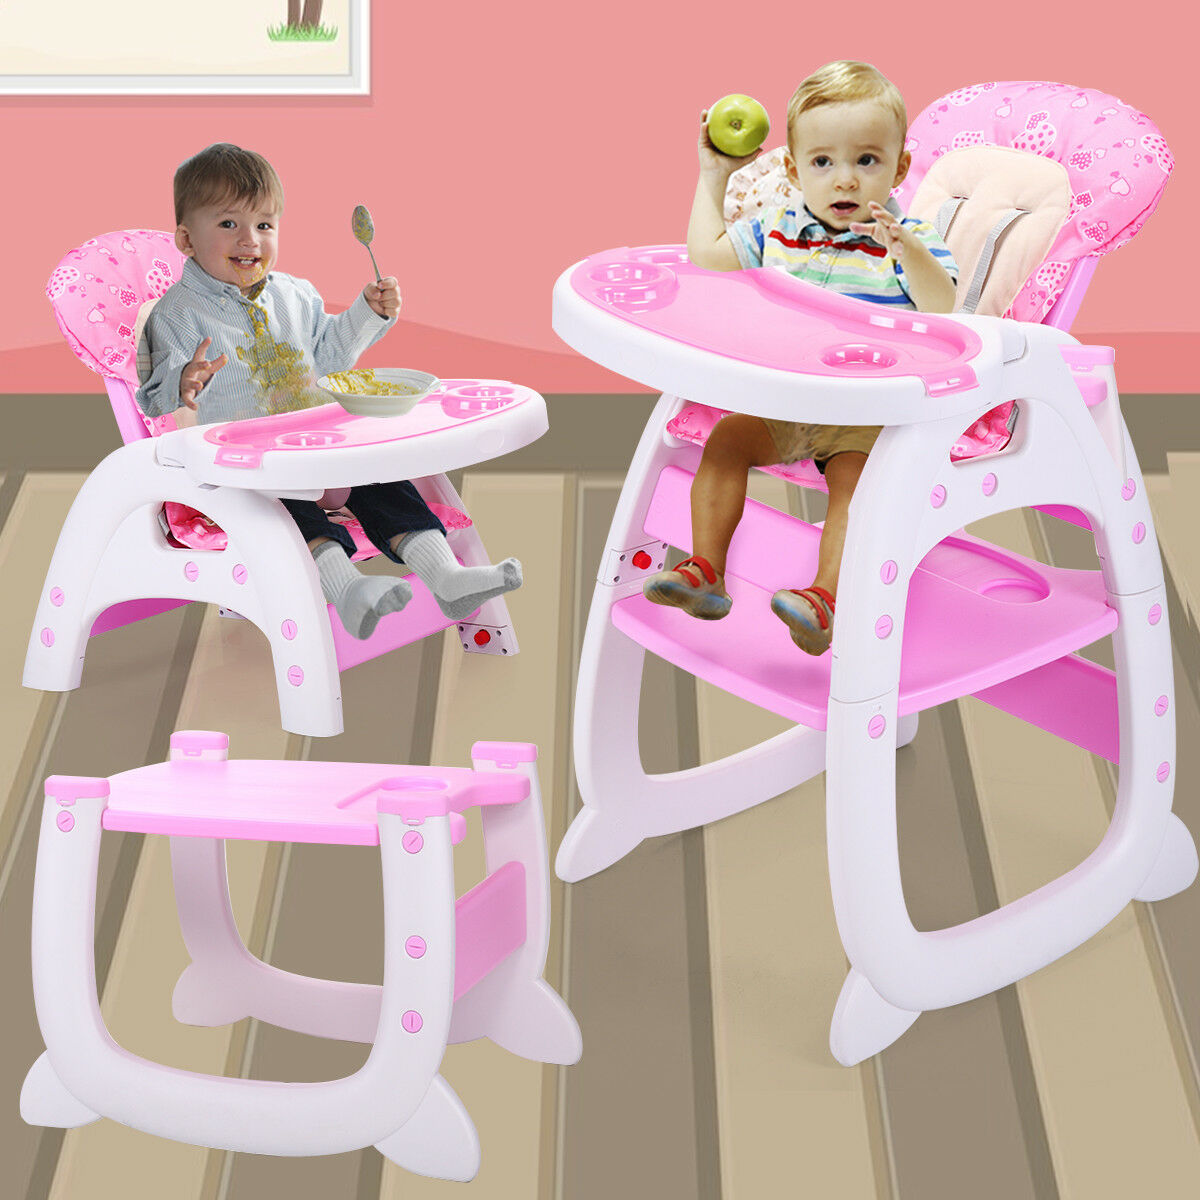 Sensational Baby High Chair 3 In 1 Convertible Play Table Seat Booster Toddler Feeding Tray Pabps2019 Chair Design Images Pabps2019Com